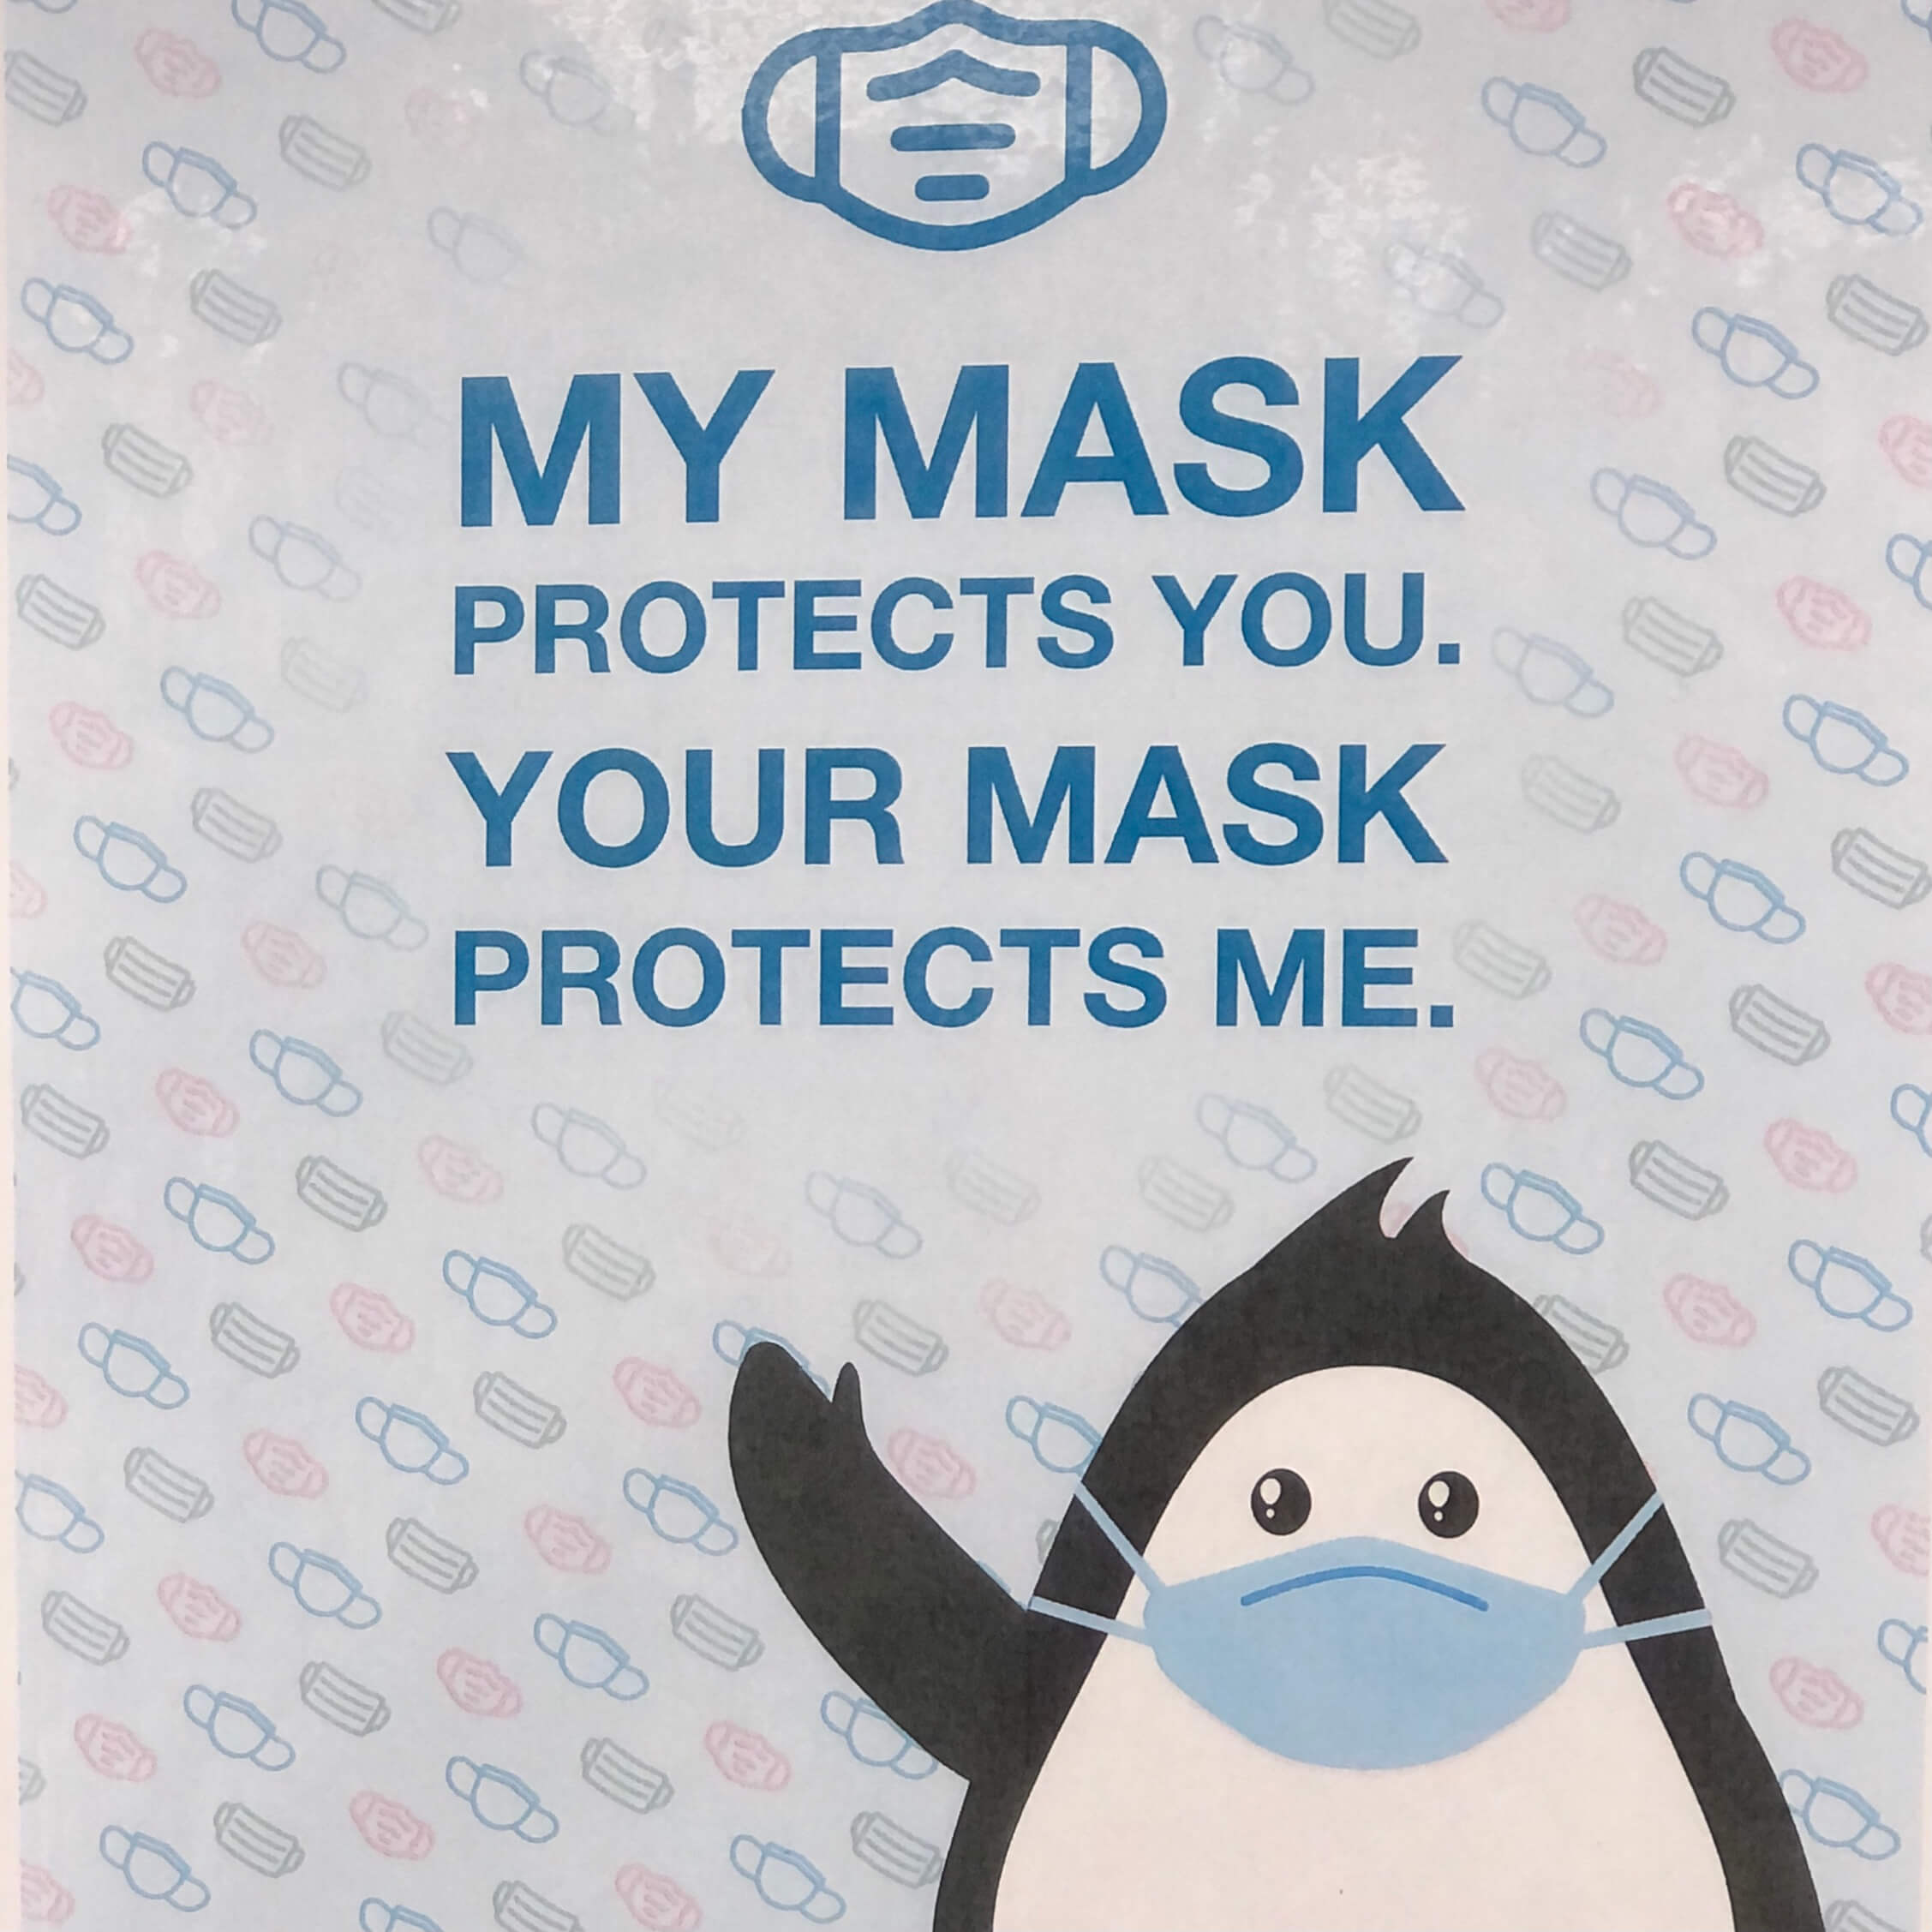 My mask protects you, your mask protects me